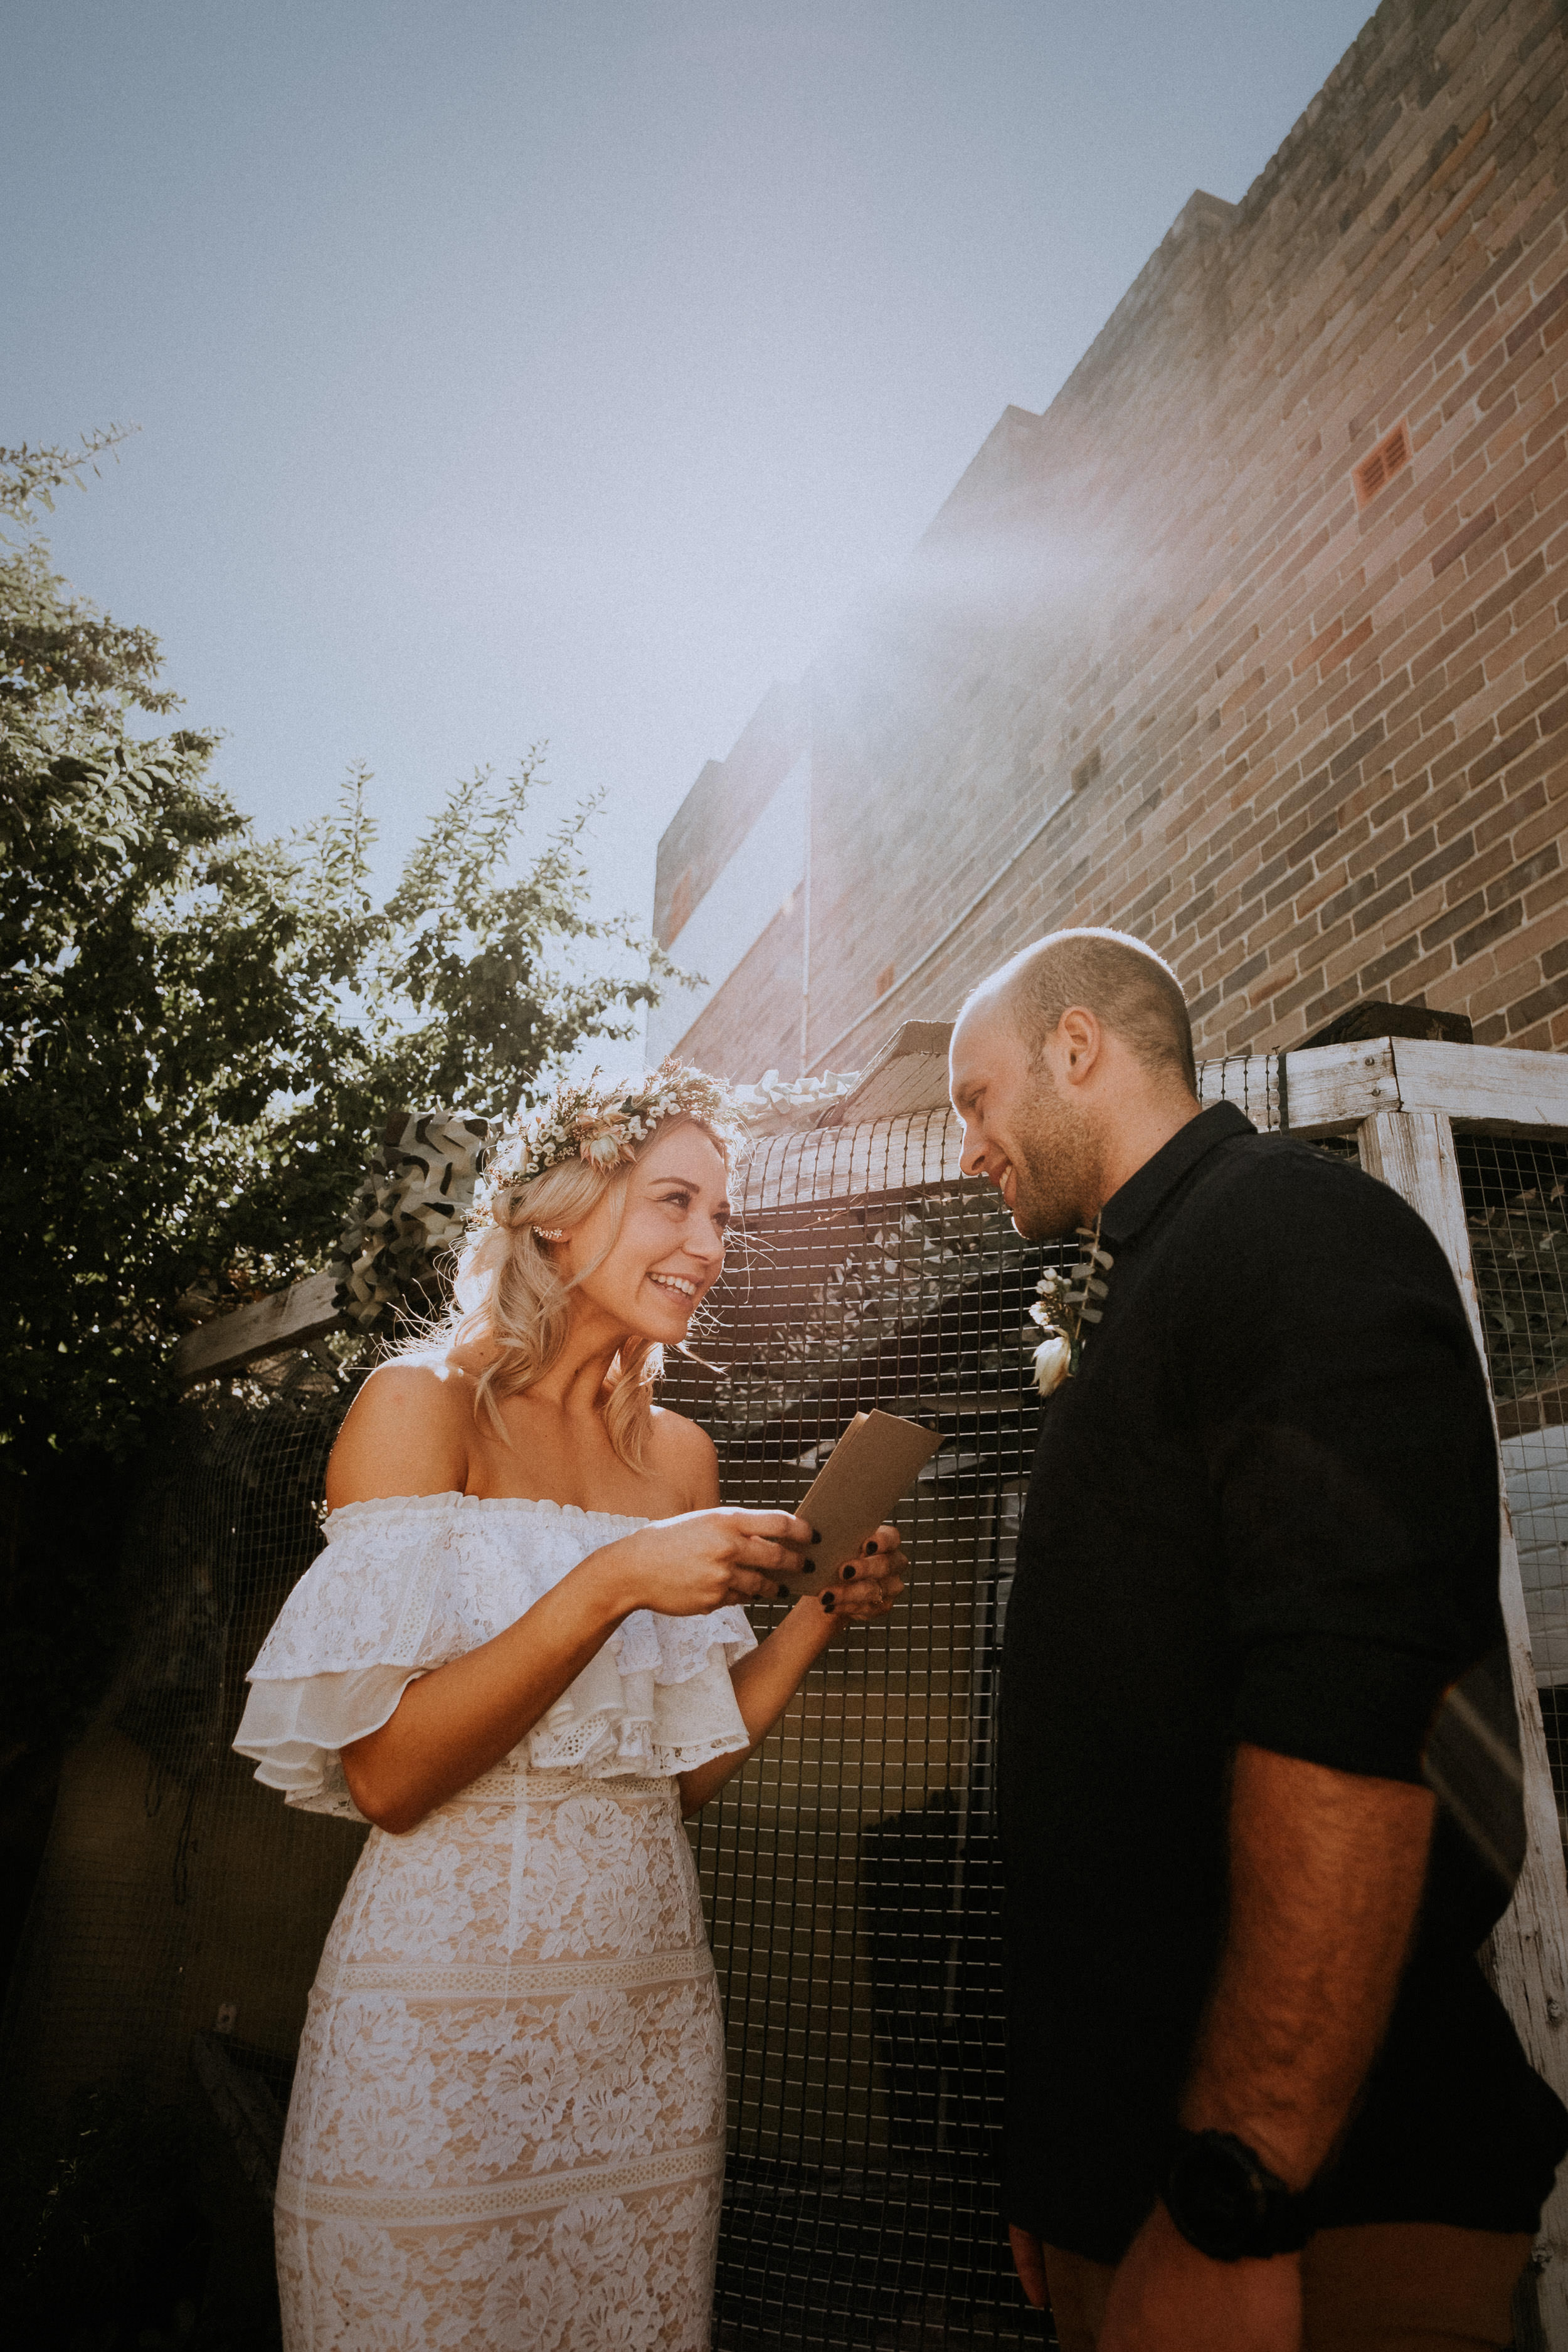 kings _ thieves - beth _ corey backyard airbnb elopement sydney - submission -110.jpg